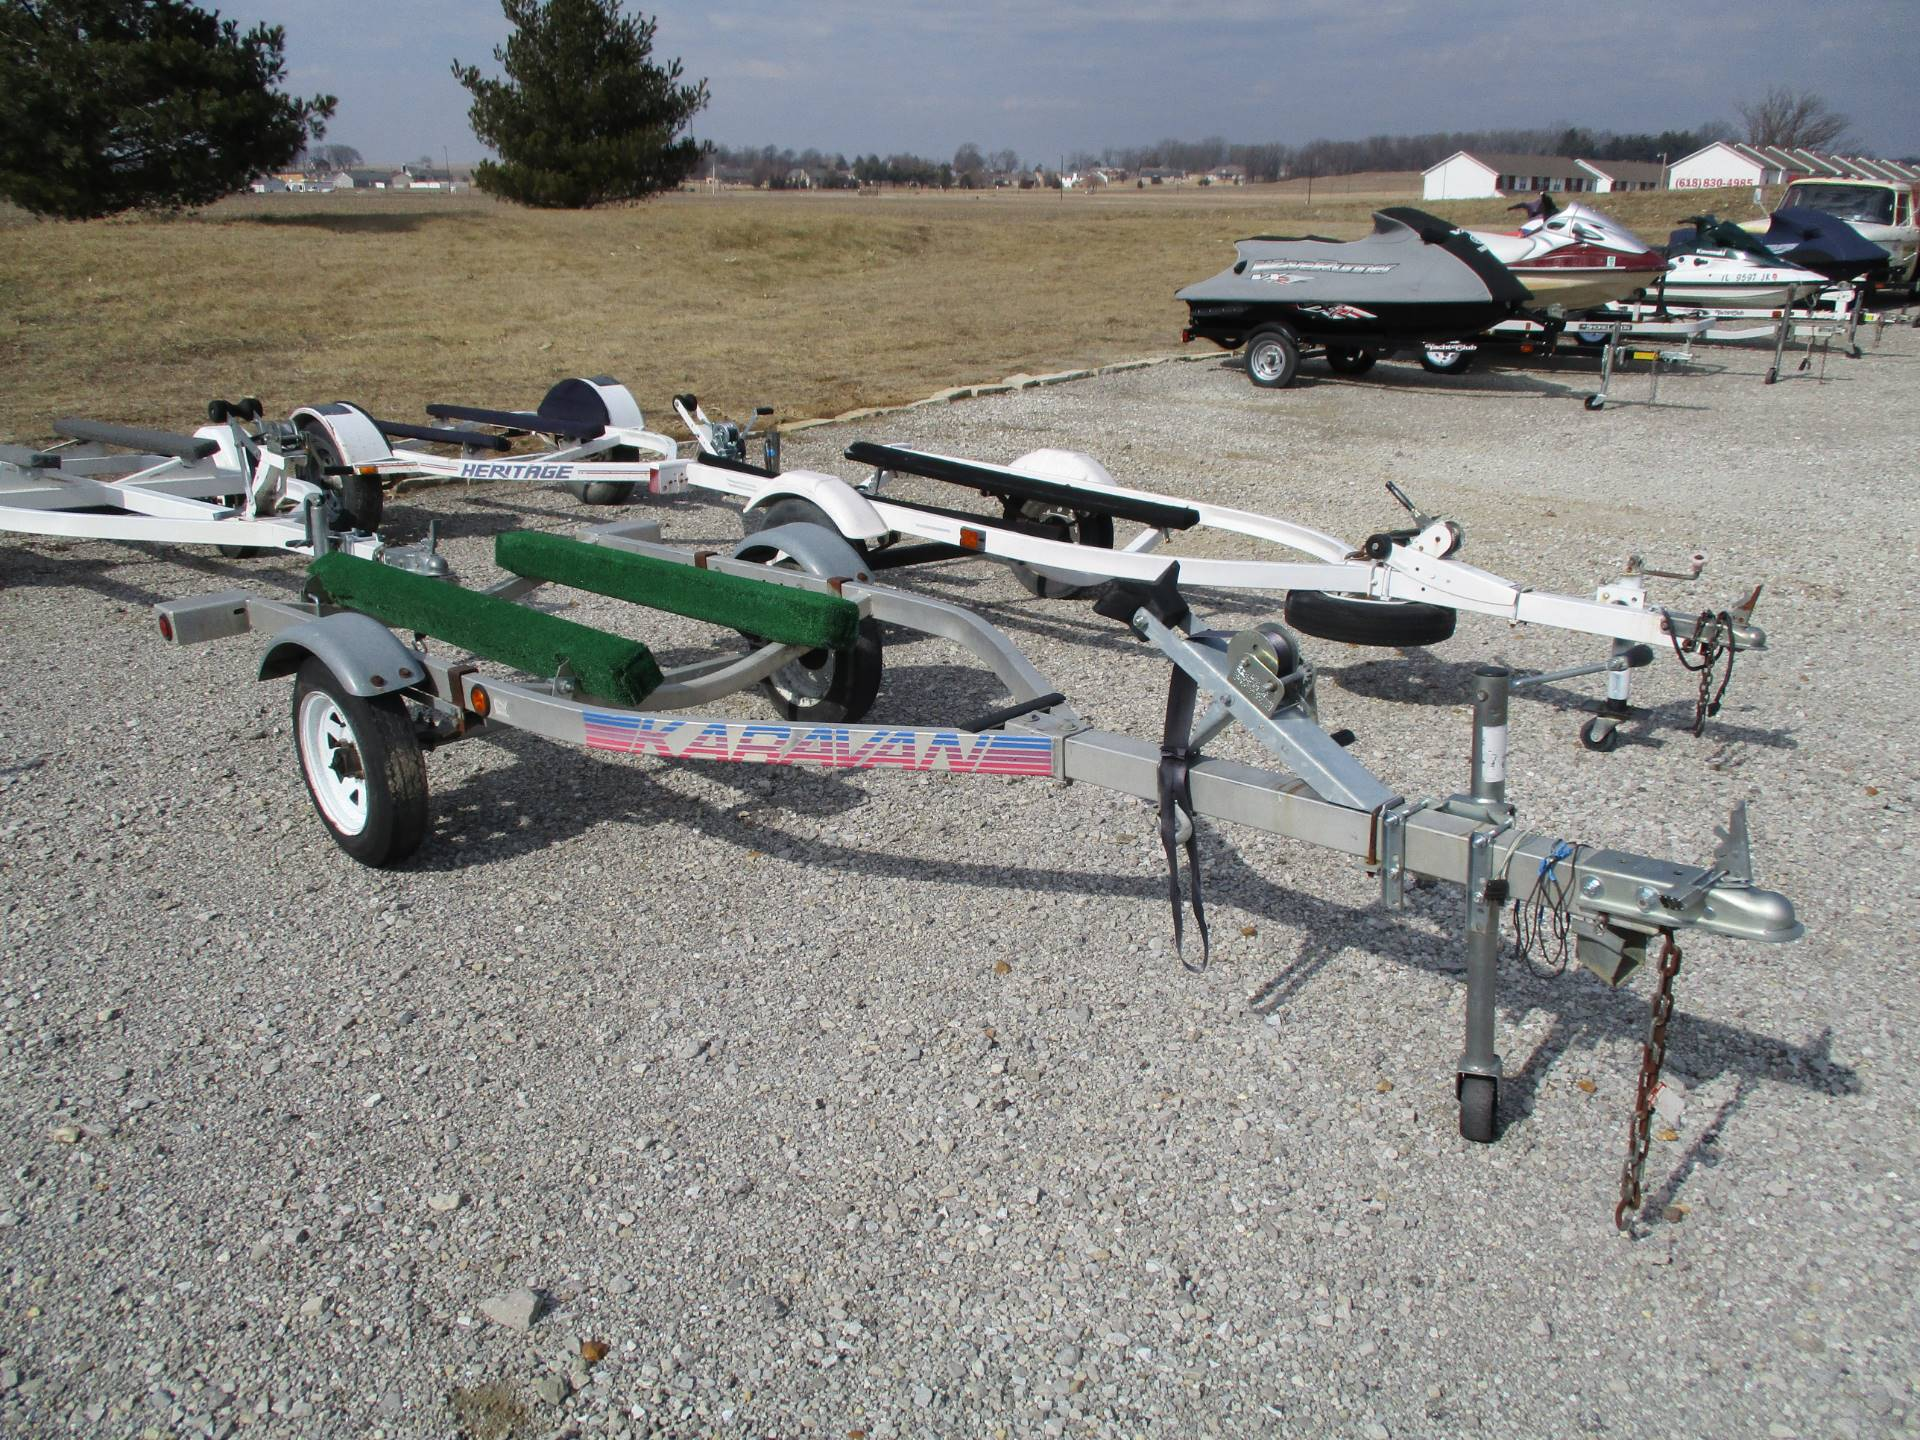 1994 Karavan Trailers js trailer in Highland, Illinois